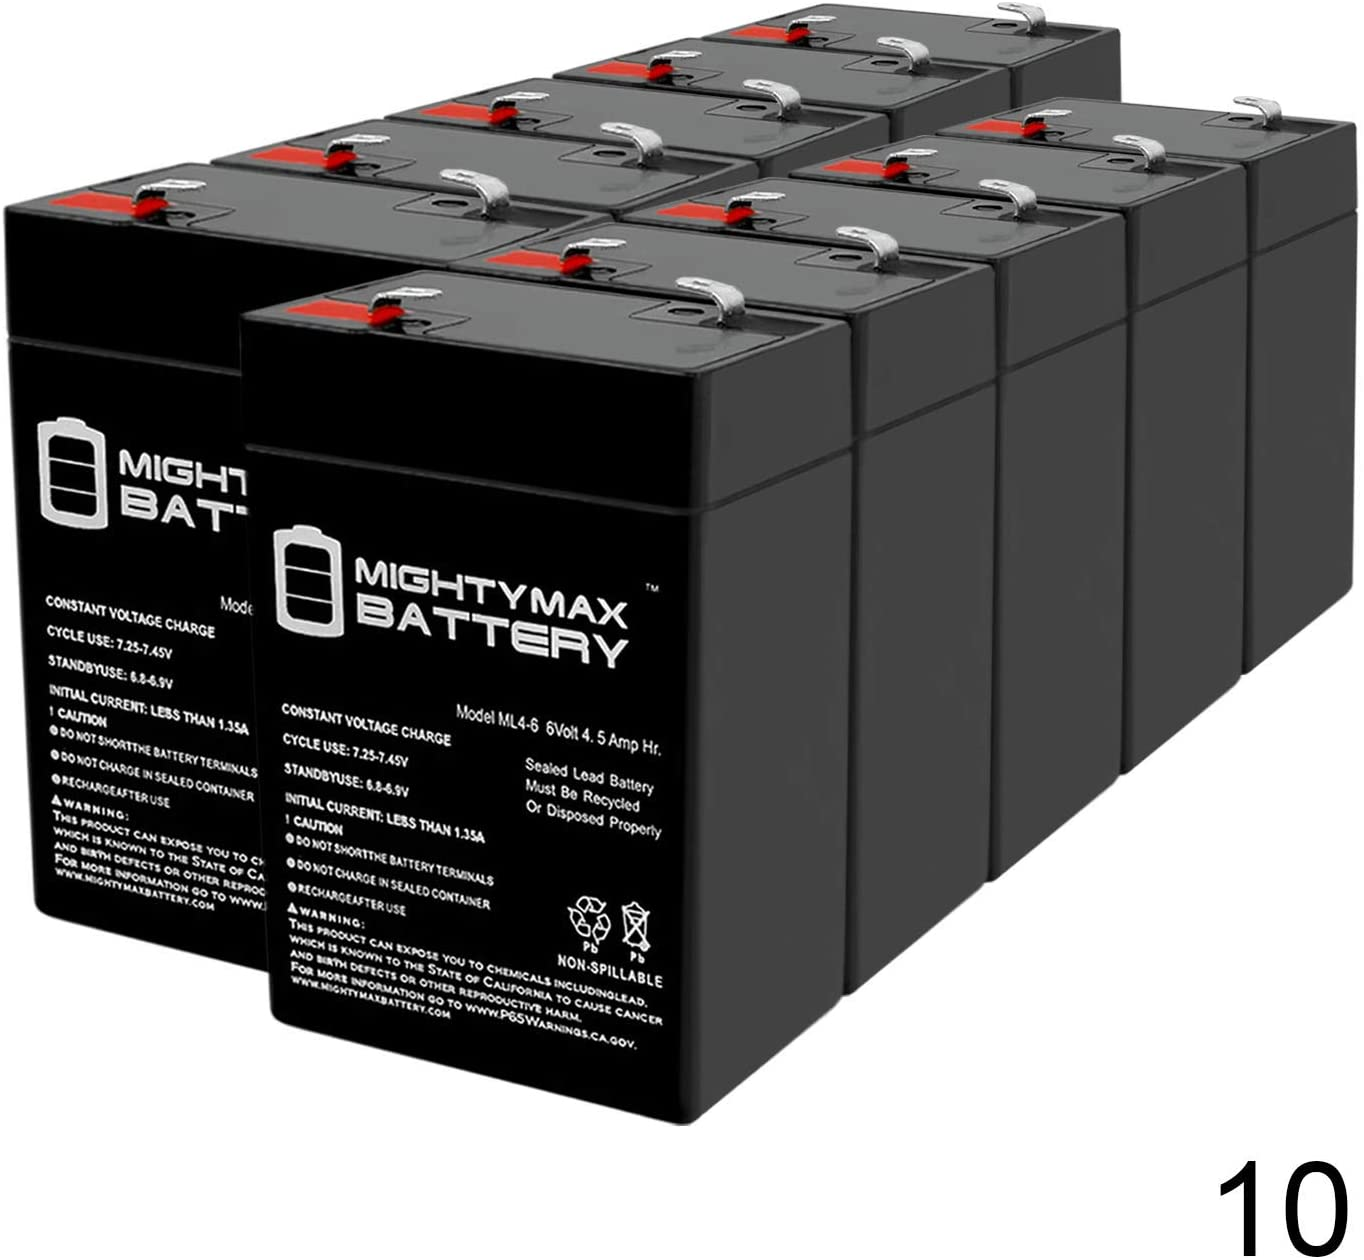 Mighty Max Battery 6V 4.5Ah Replacement for APC Back-UPS 250 Battery - 10 Pack Brand Product